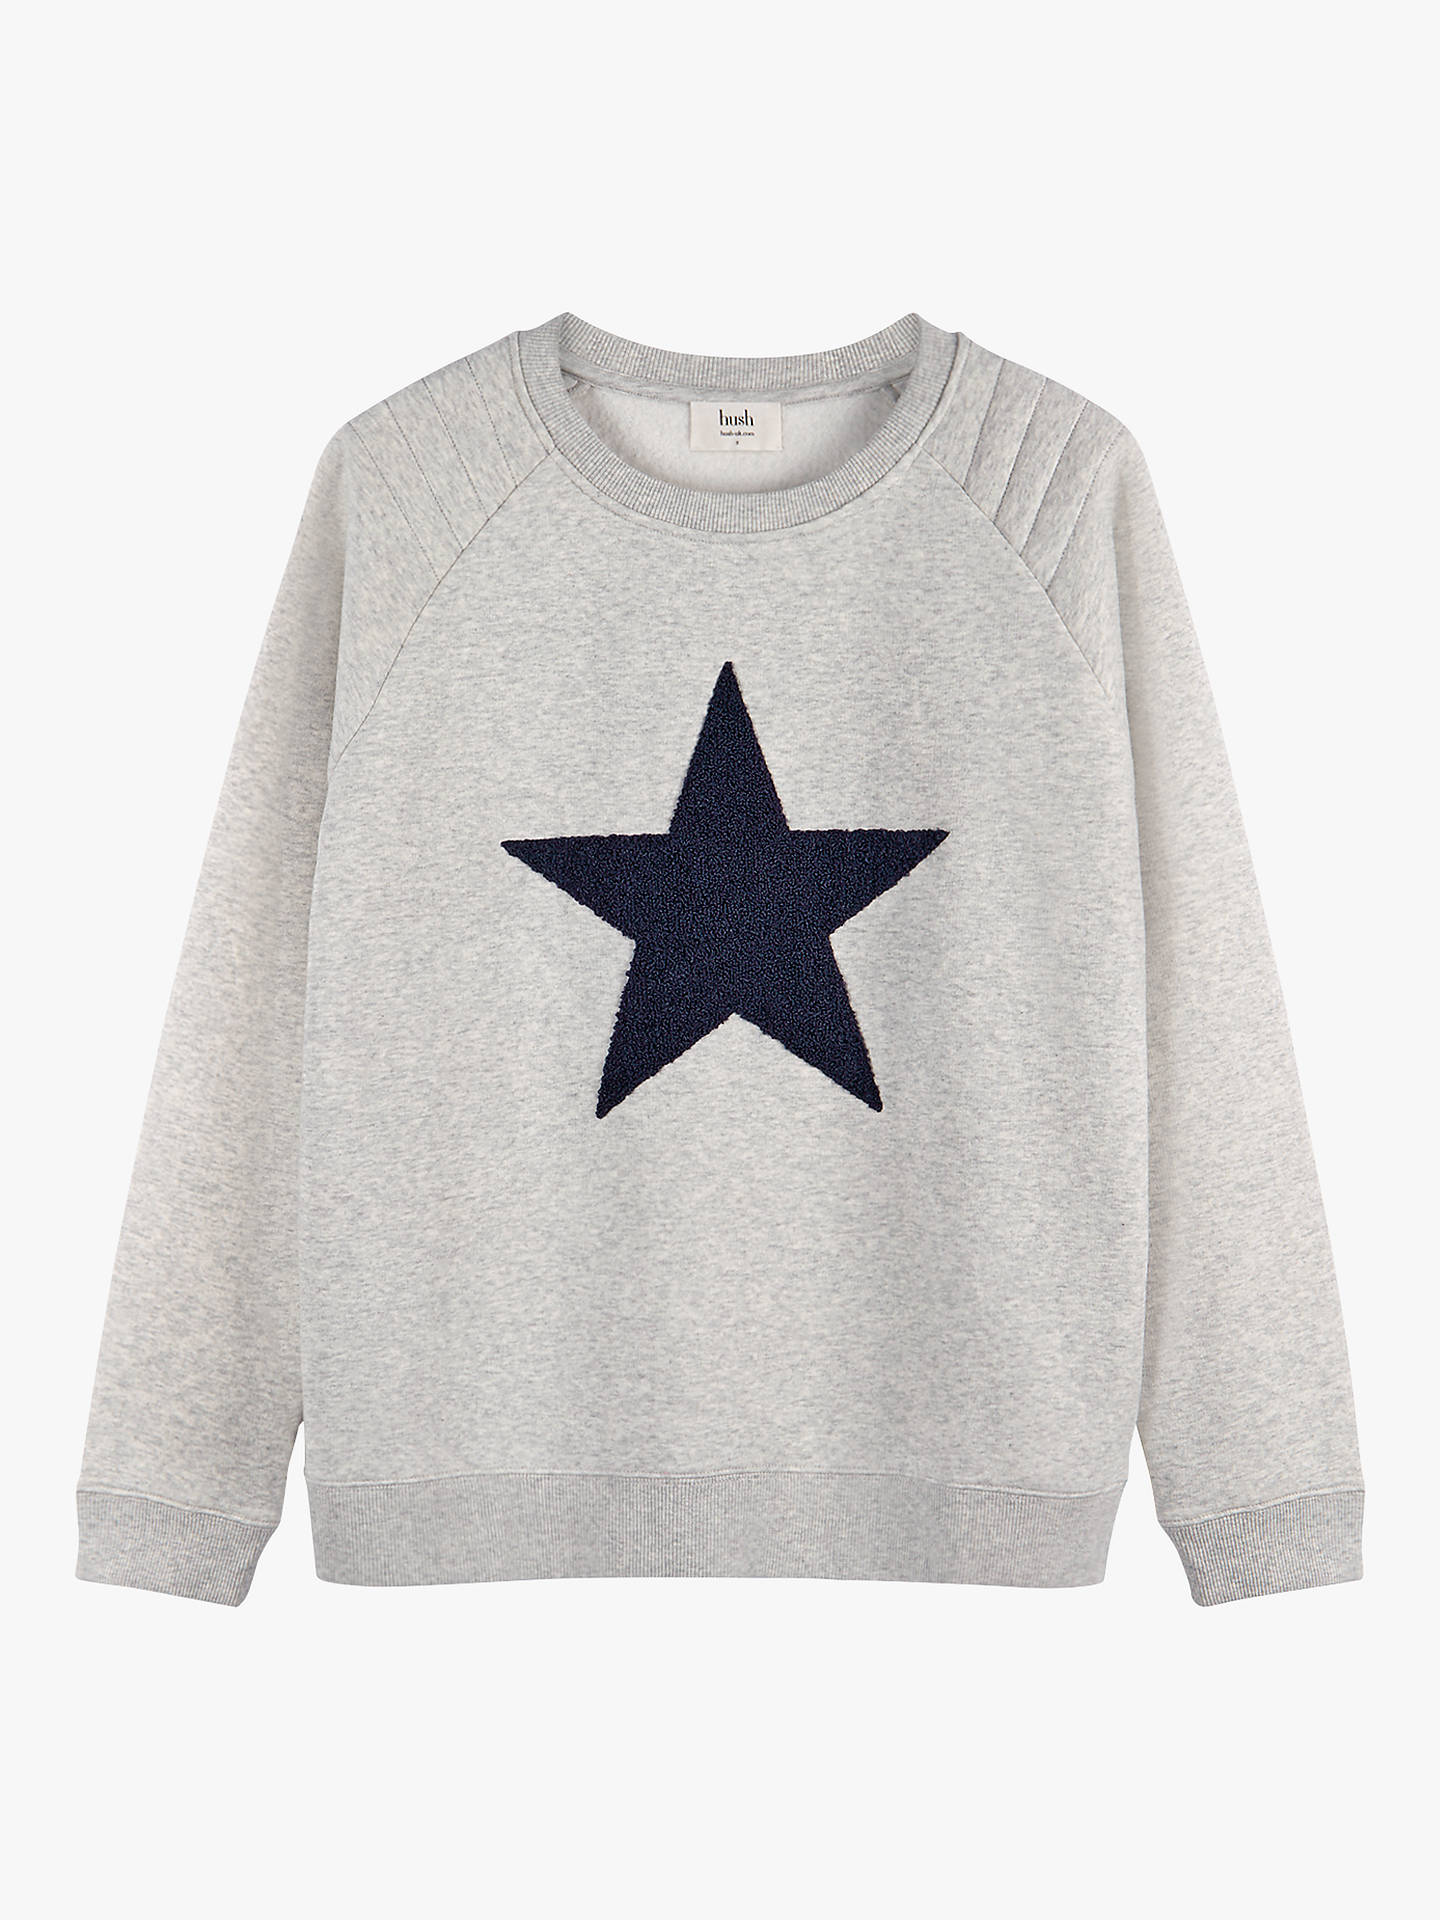 Buyhush Star Biker Sweat Top, Lightest Grey Marl/Midnight, XS Online at johnlewis.com